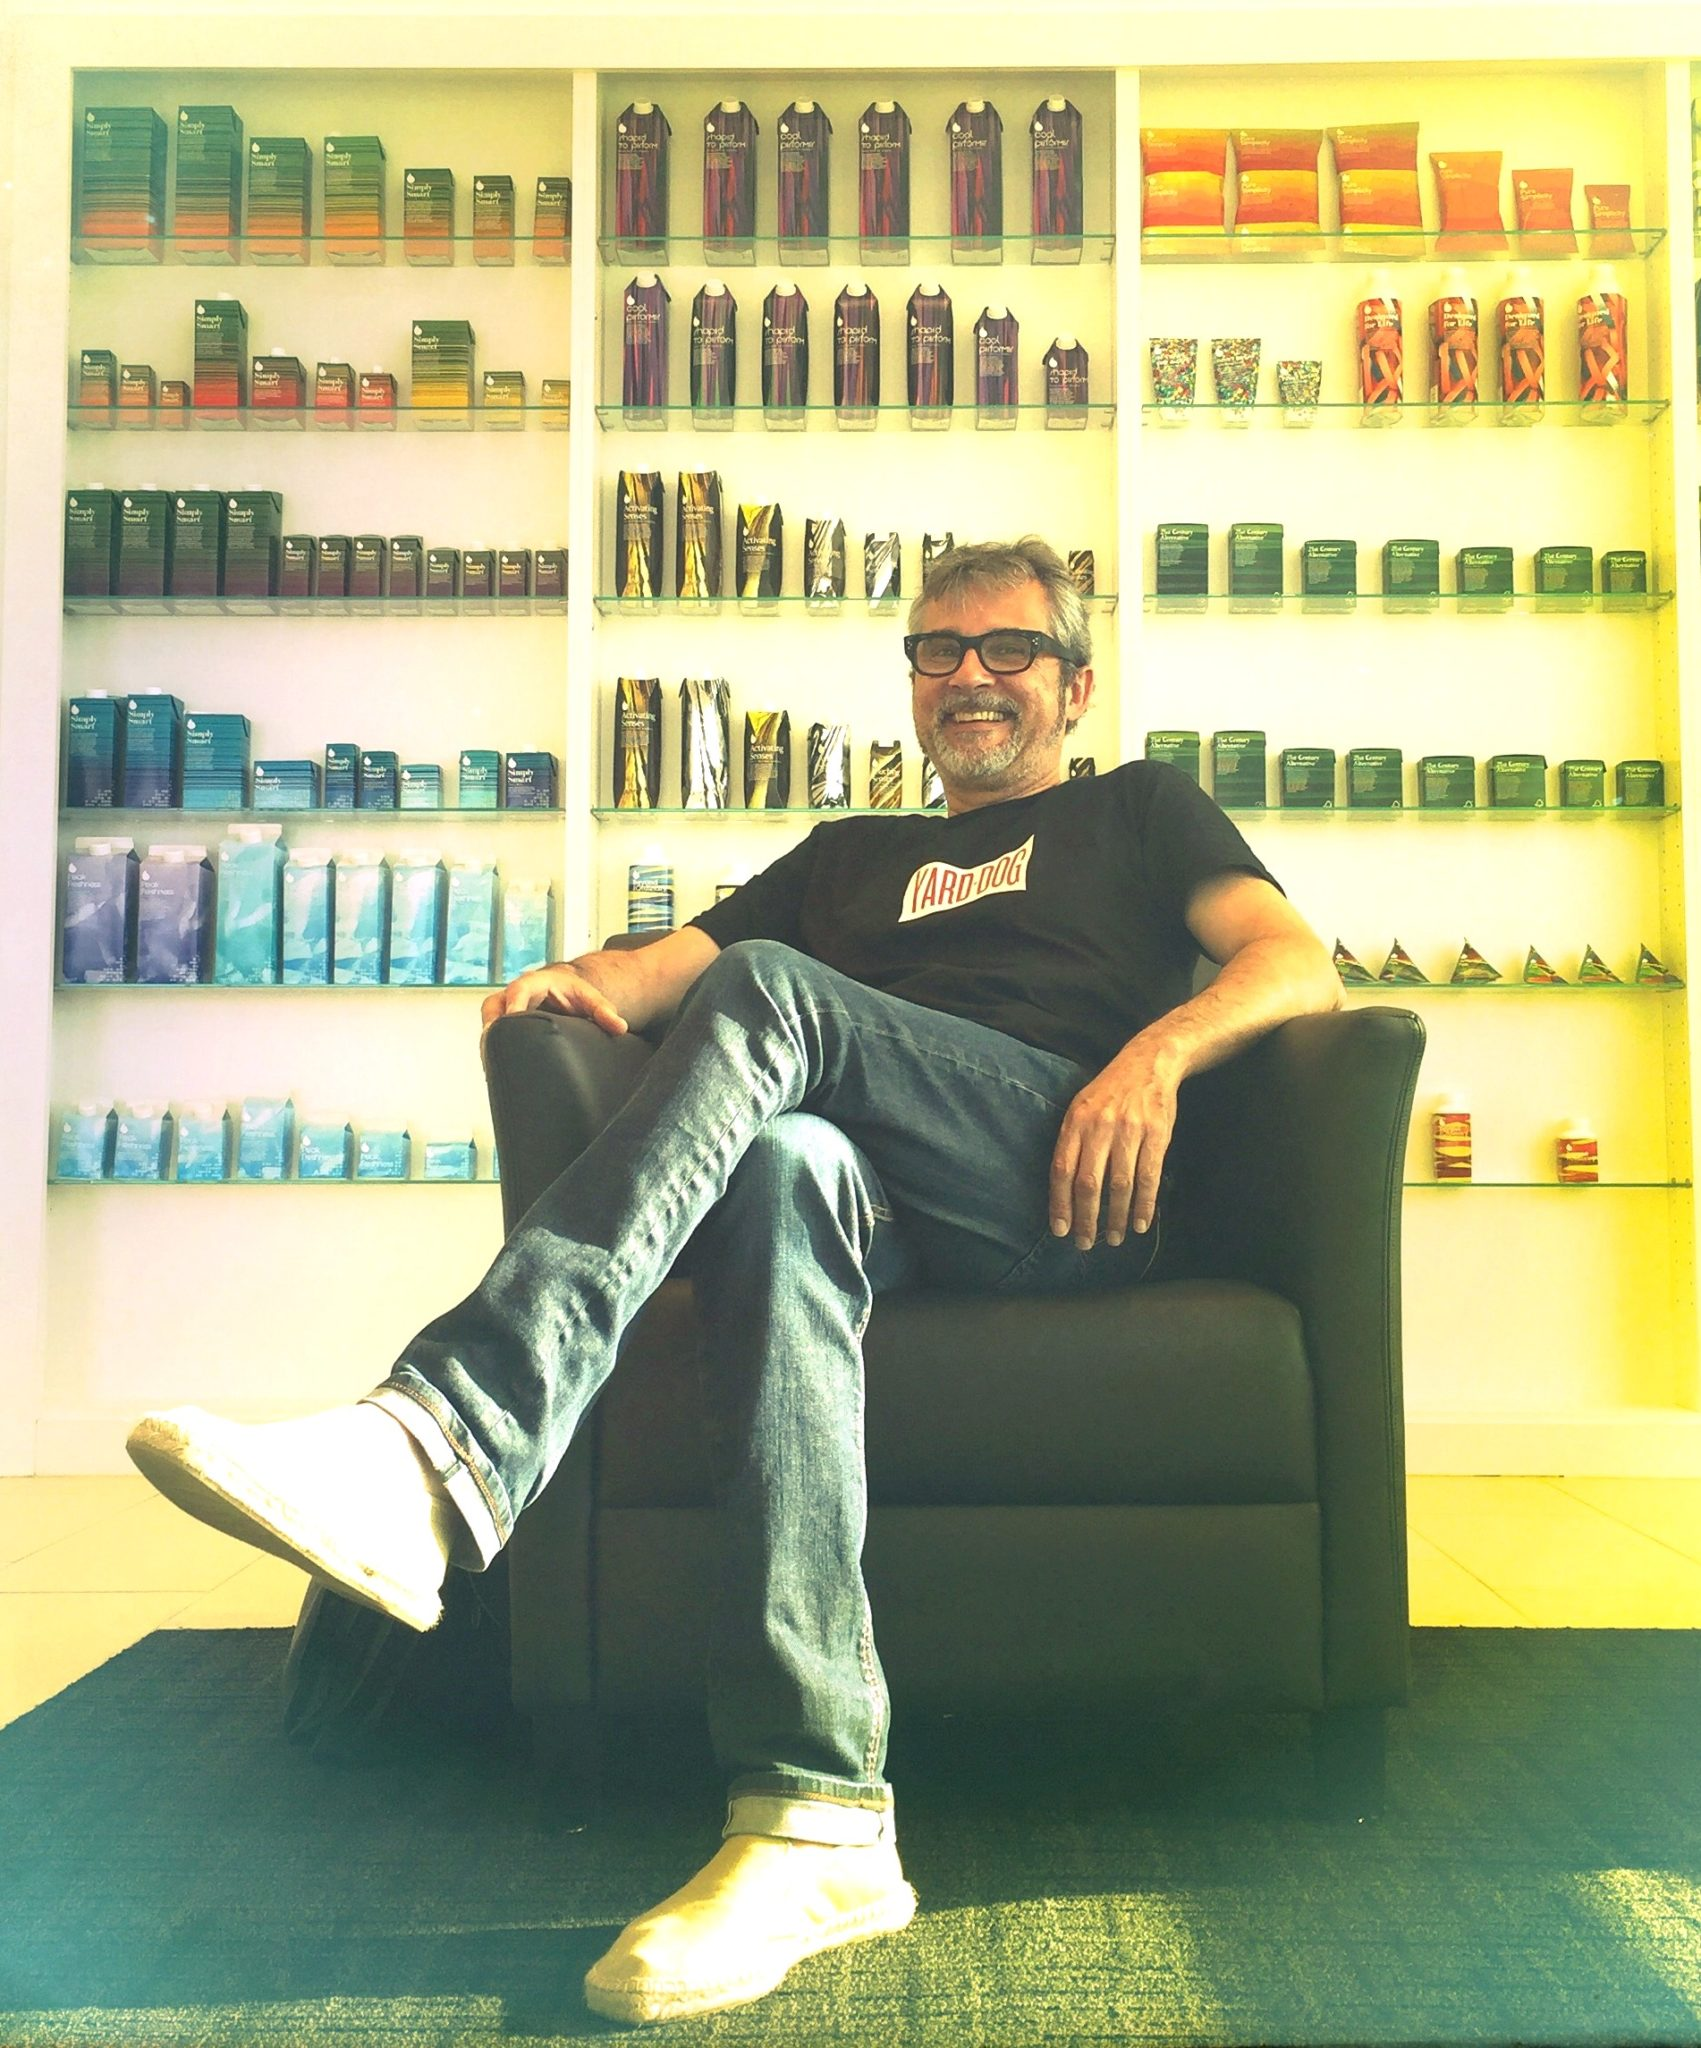 Interview with Fabrice PELTIER, Designer and Chairman of the INDP (French National Institute of Design Packaging)